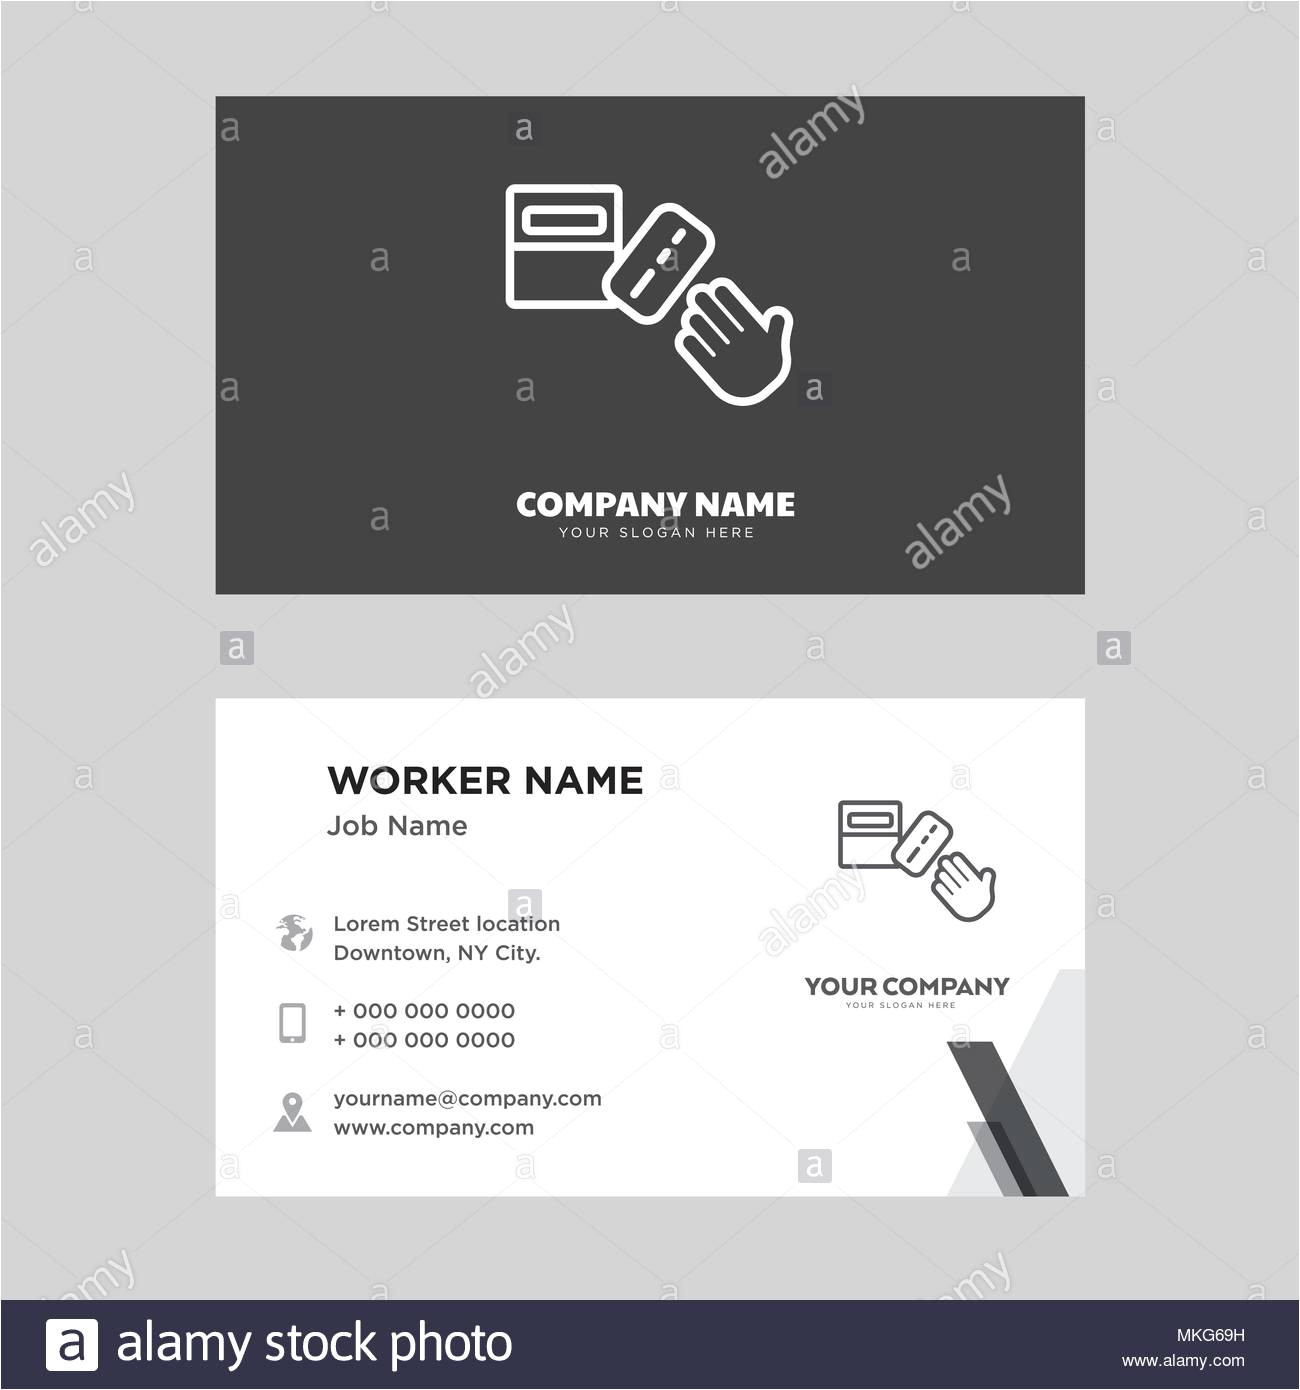 ballot business card design template visiting for your company modern horizontal identity card vector mkg69h jpg